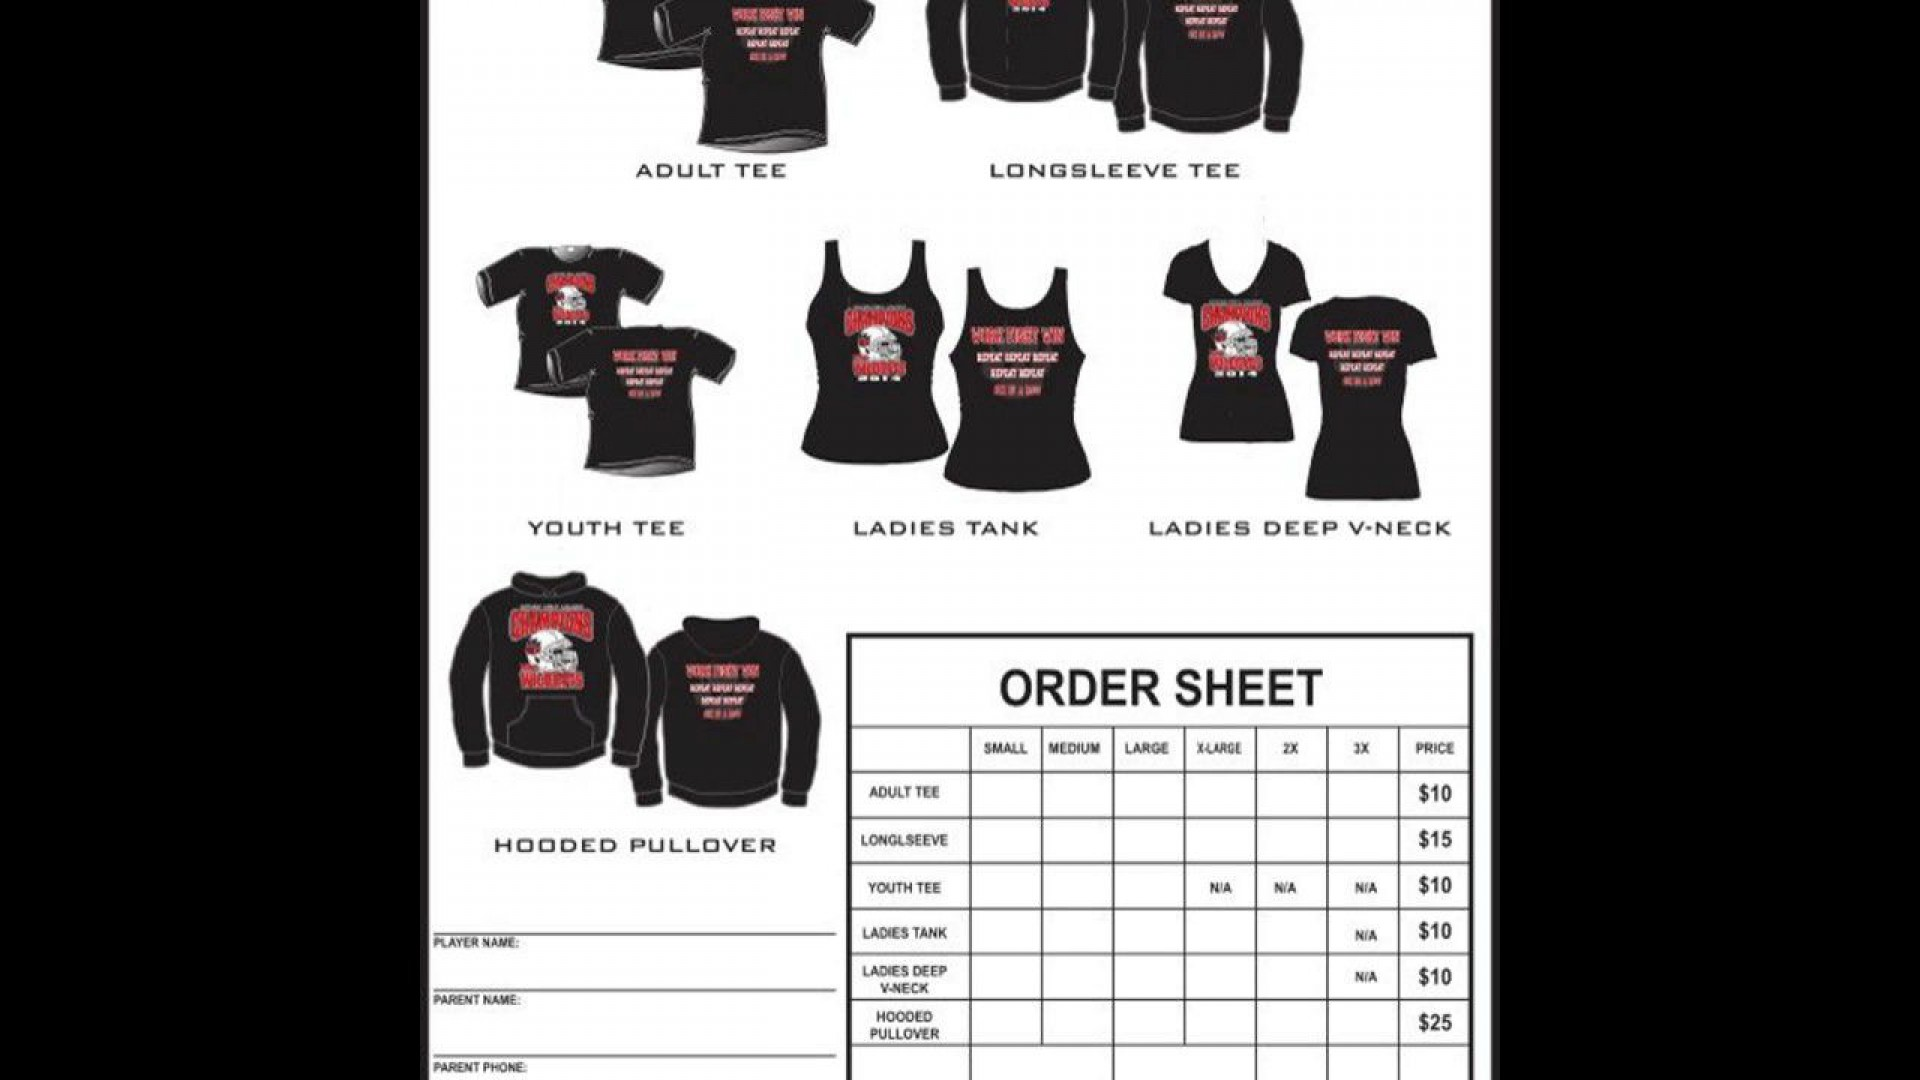 008 Dreaded Shirt Order Form Template Picture  Templates T Microsoft Word Excel Download Tee1920